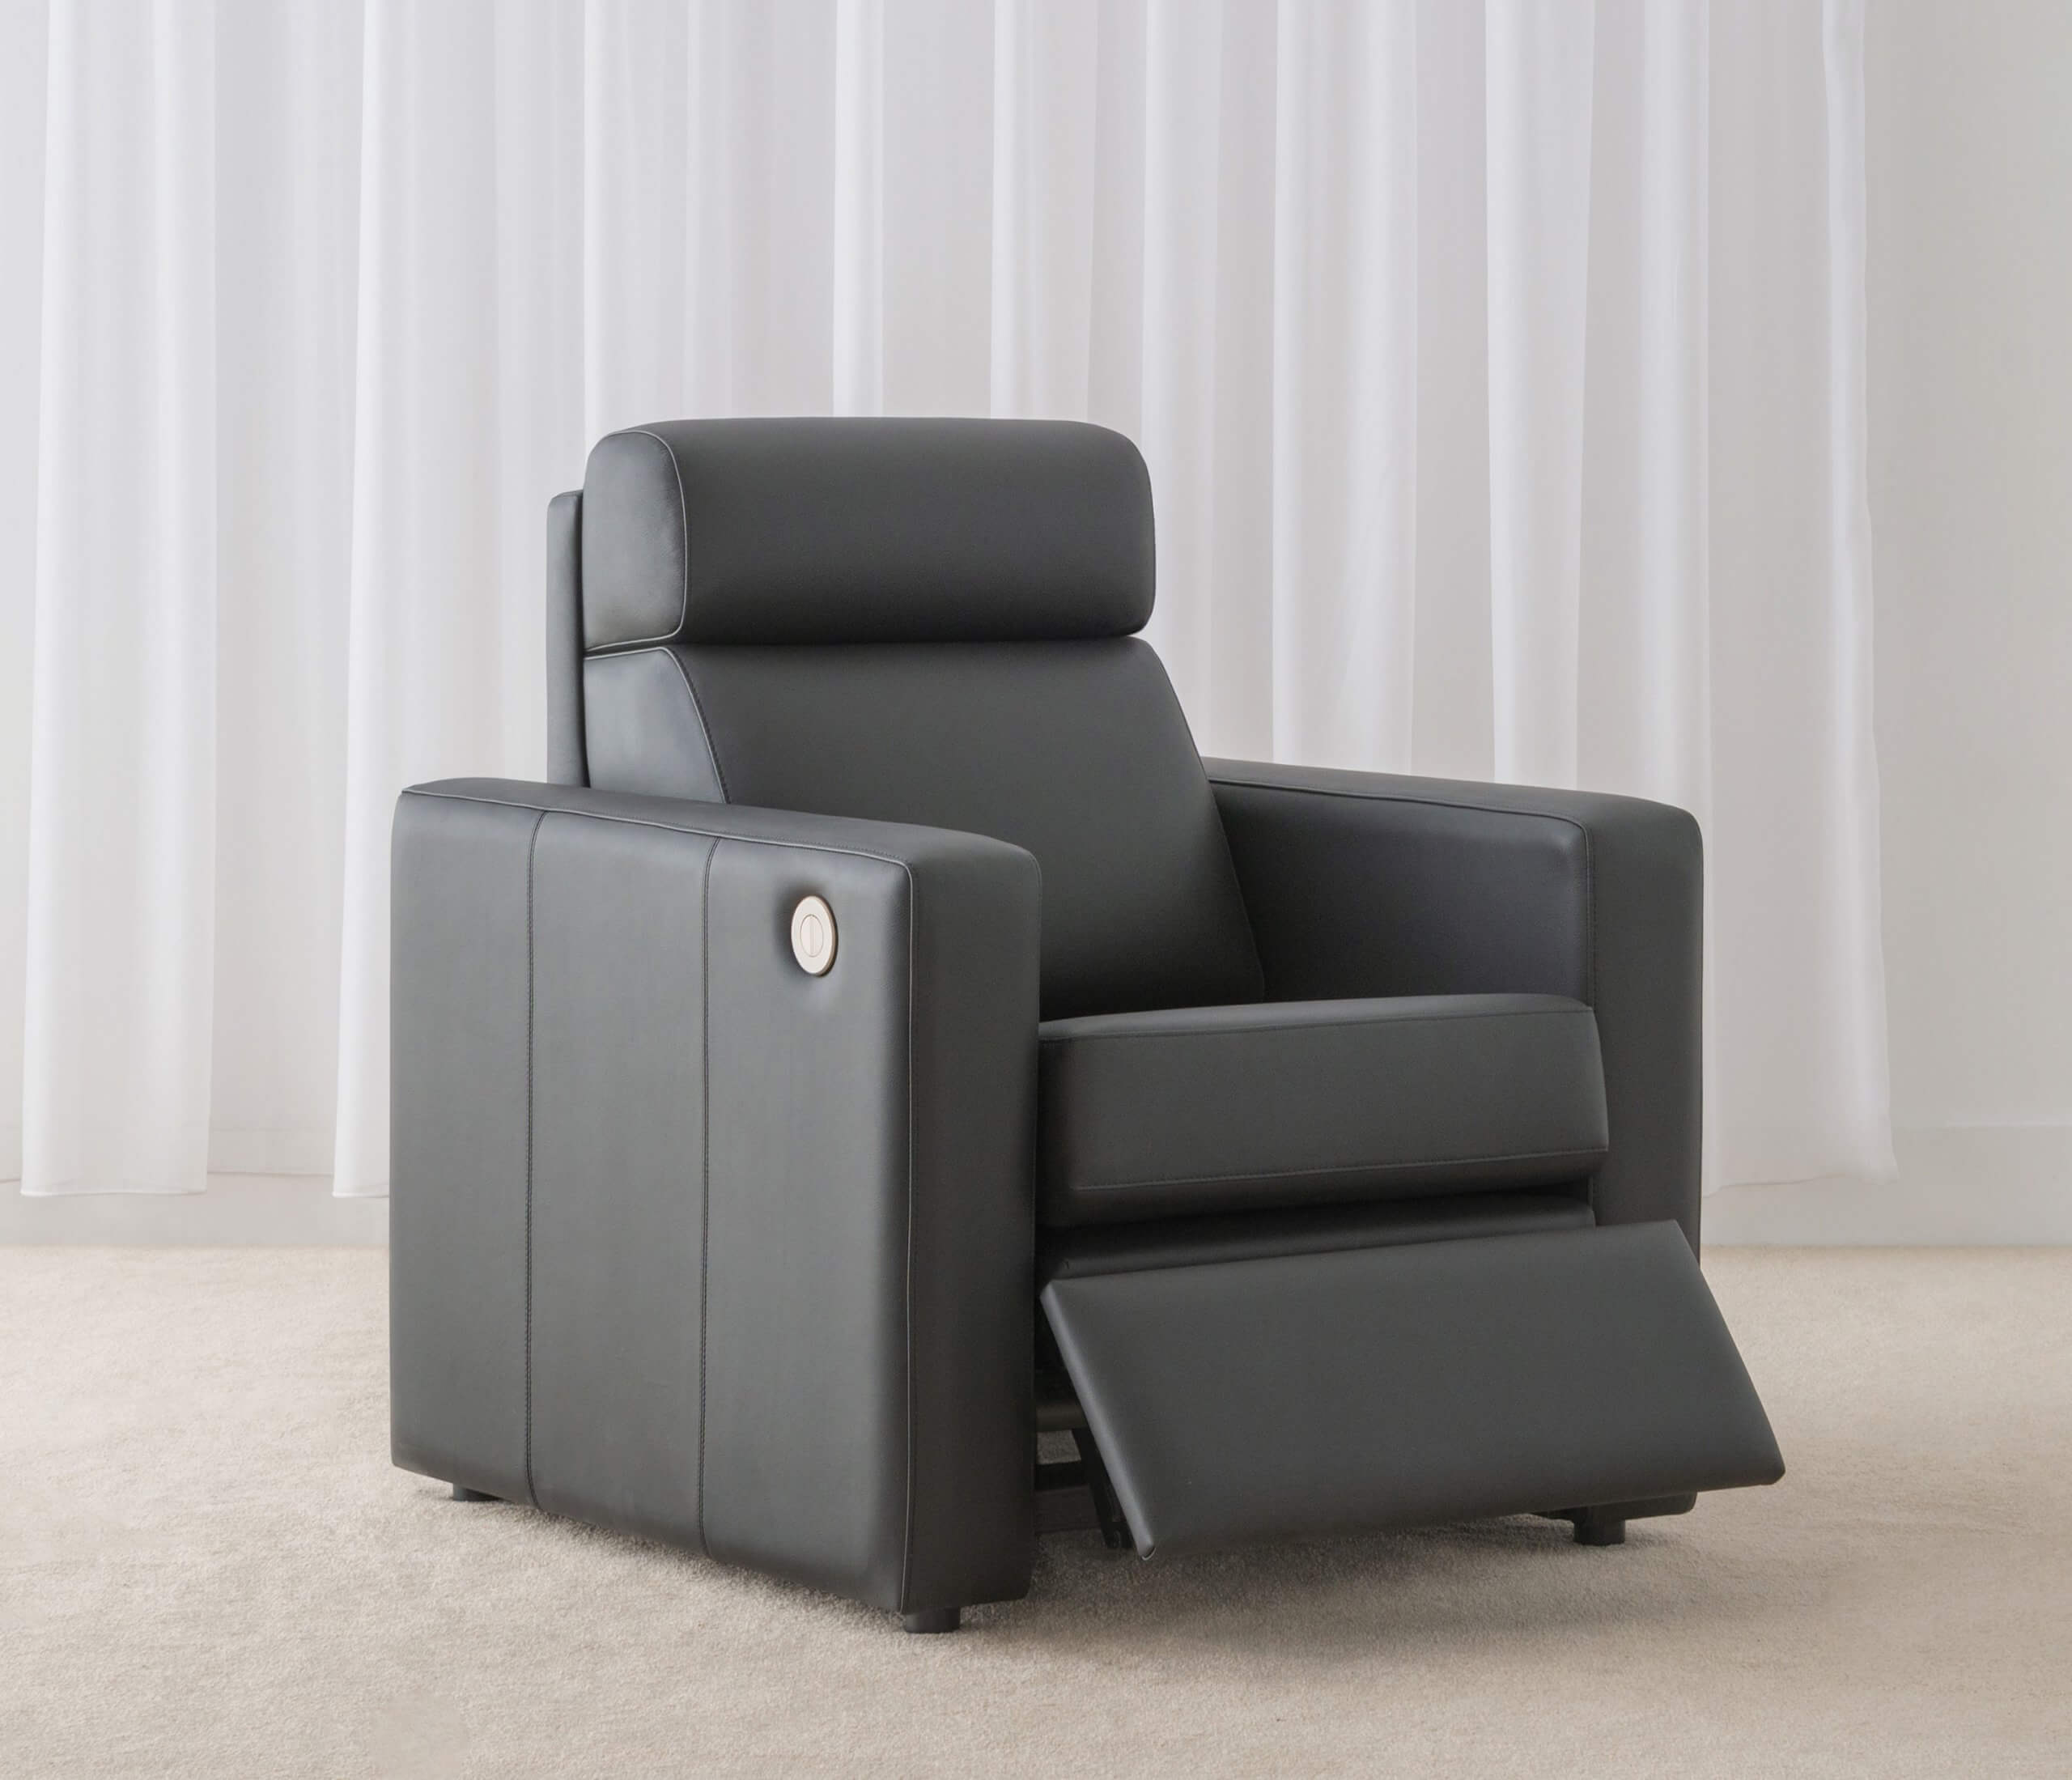 black leather recliner chair with head roll and arm rests